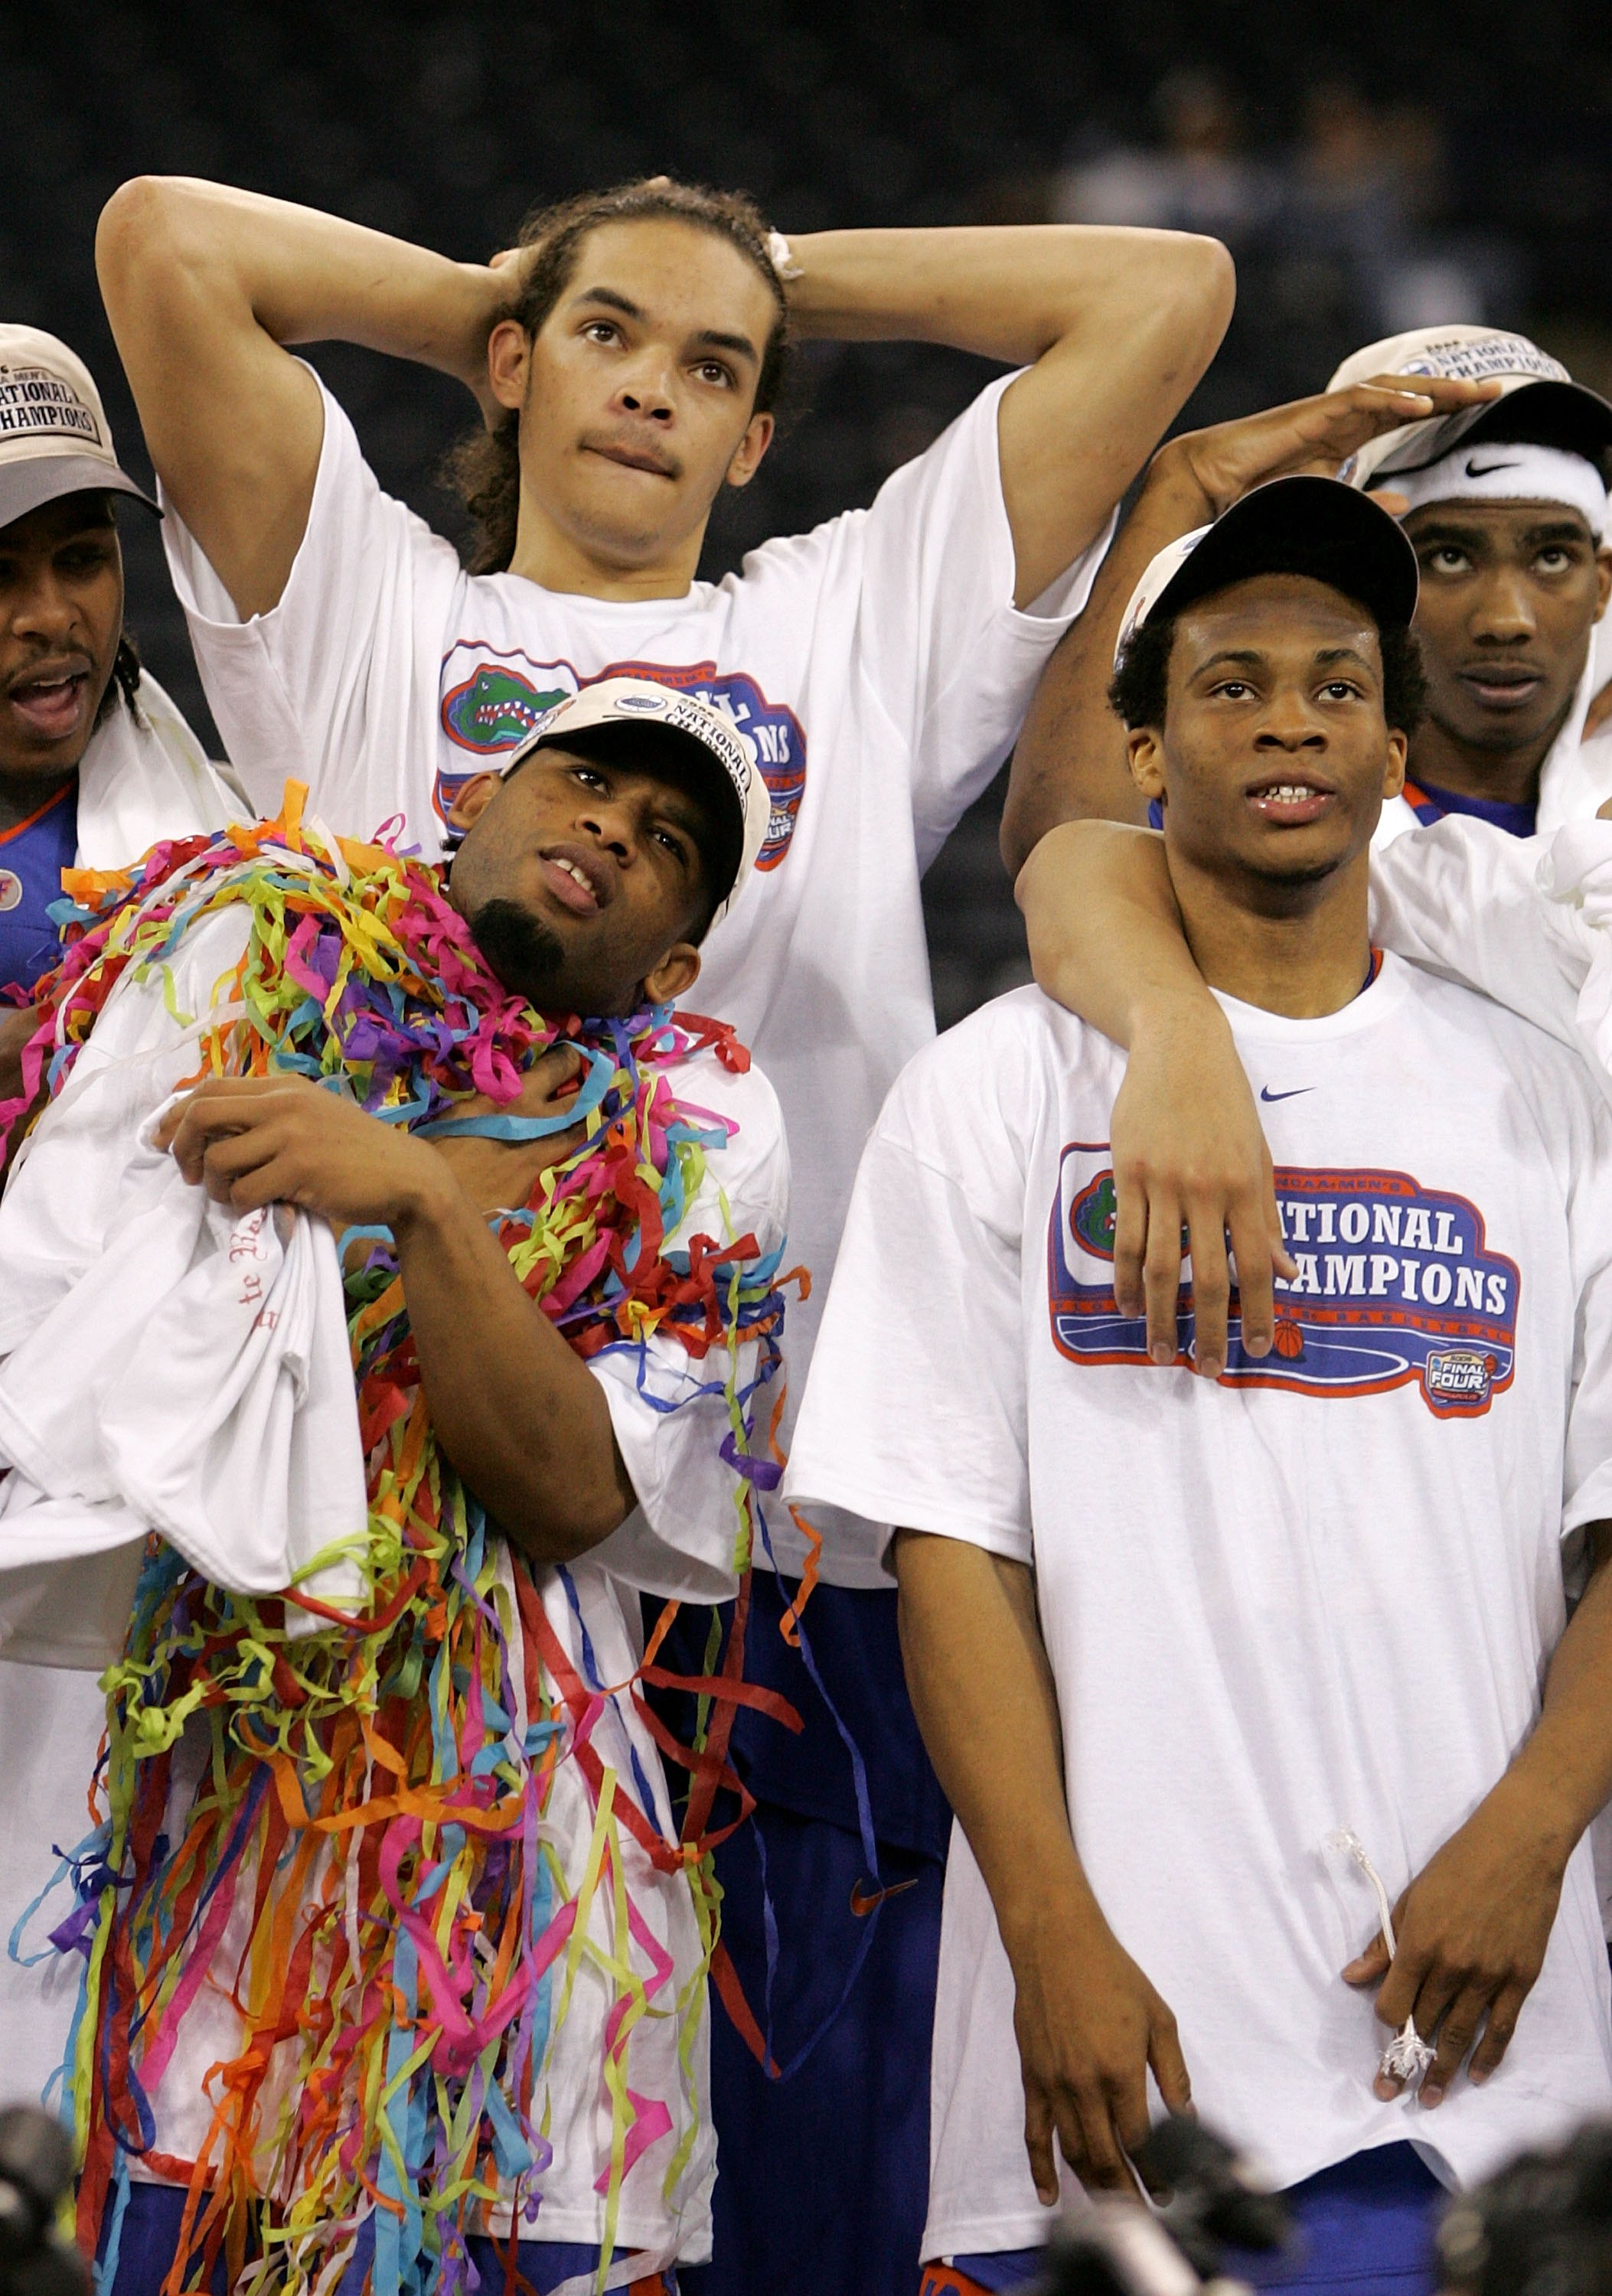 INDIANAPOLIS - APRIL 03:  (L-R) Walter Hodge #15, Joakim Noah #13, Taurean Green #11 and Corey Brewer #2 of the Florida Gators celebrate after defeating the UCLA Bruins 73-57 during the National Championship game of the NCAA Men's Final Four on April 3, 2